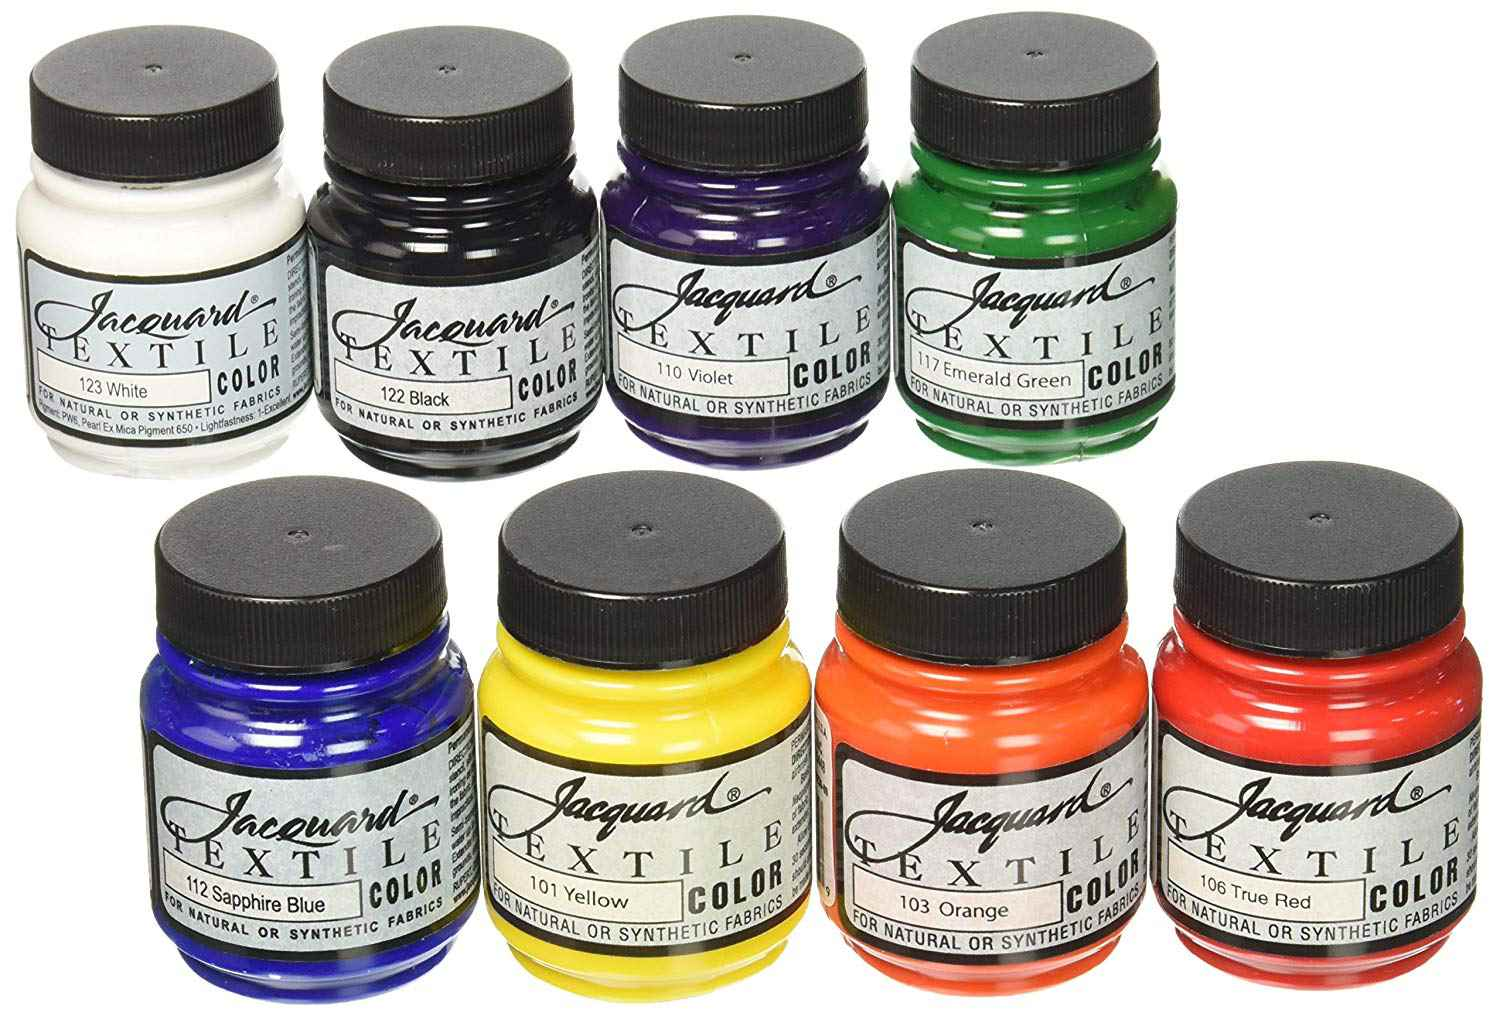 Jacquard Textile Color Fabric Paint, Set of 8